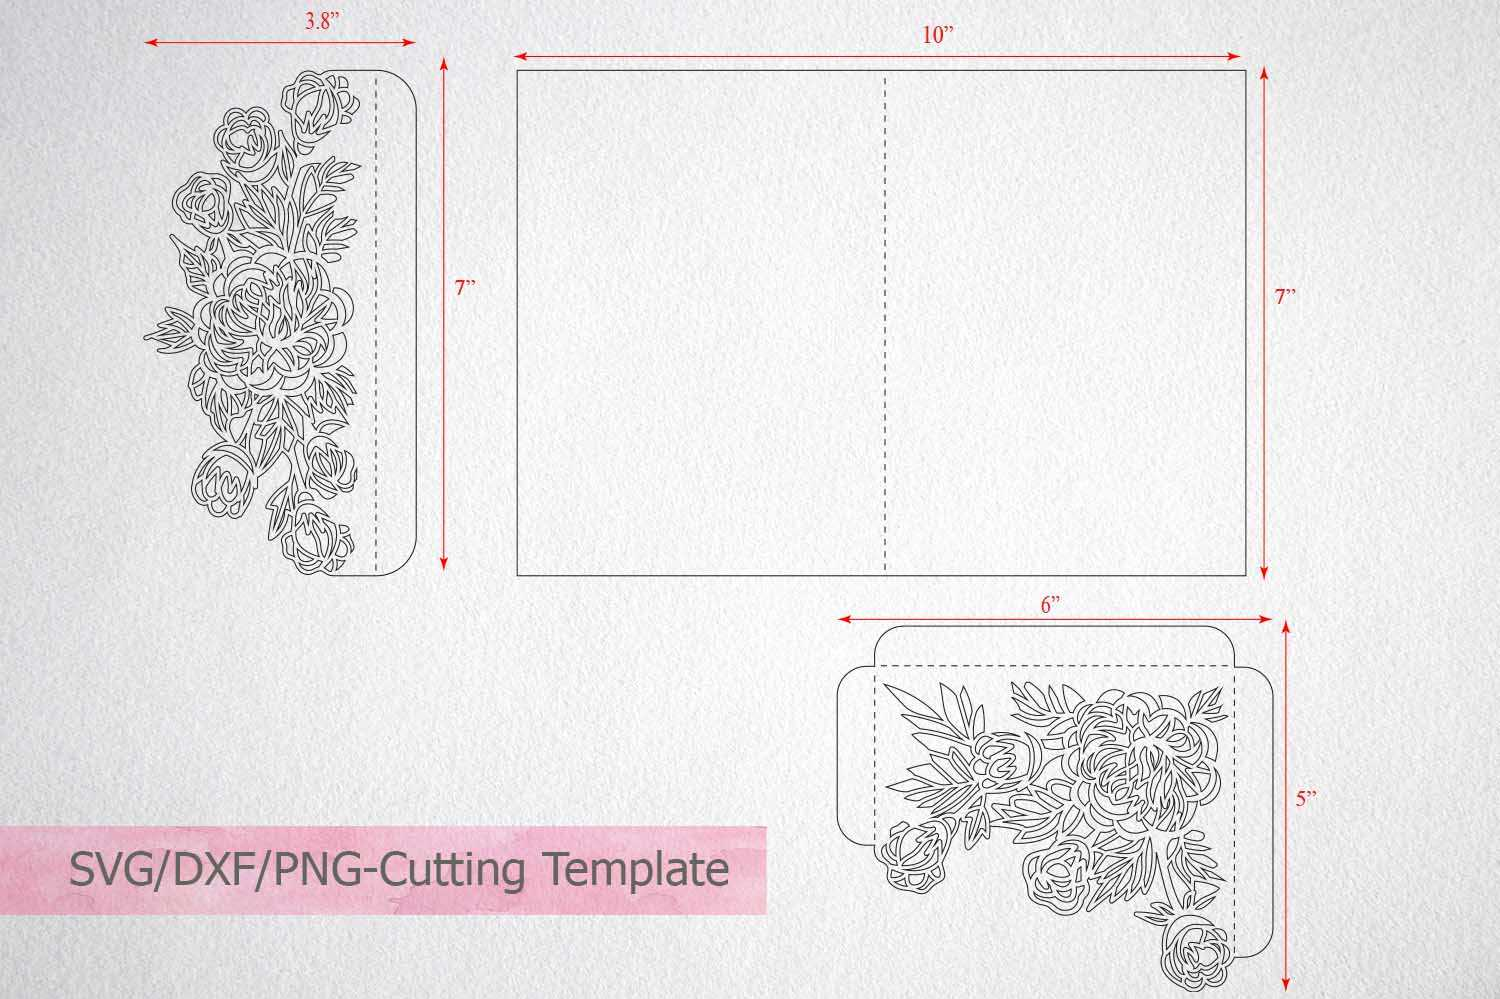 Tri Fold Wedding Invitation Card Template Laser Cut Sxg Dxf Intended For Three Fold Card Template